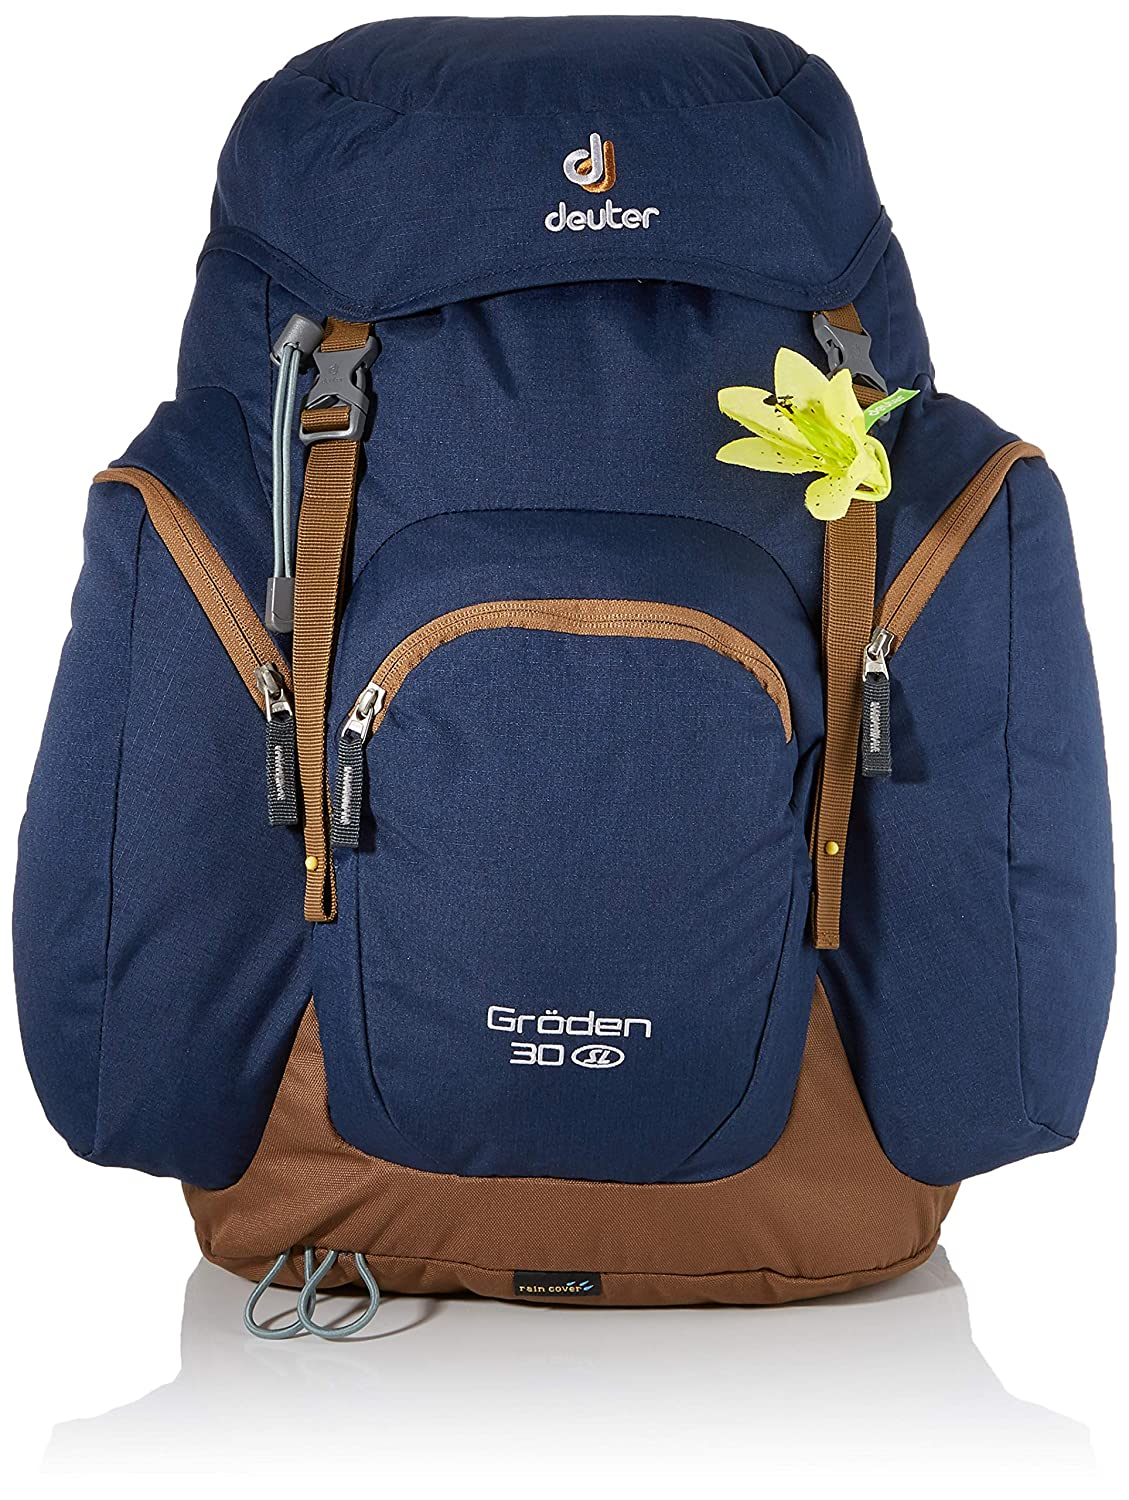 Deuter Groden 30 SL Hiking Backpack